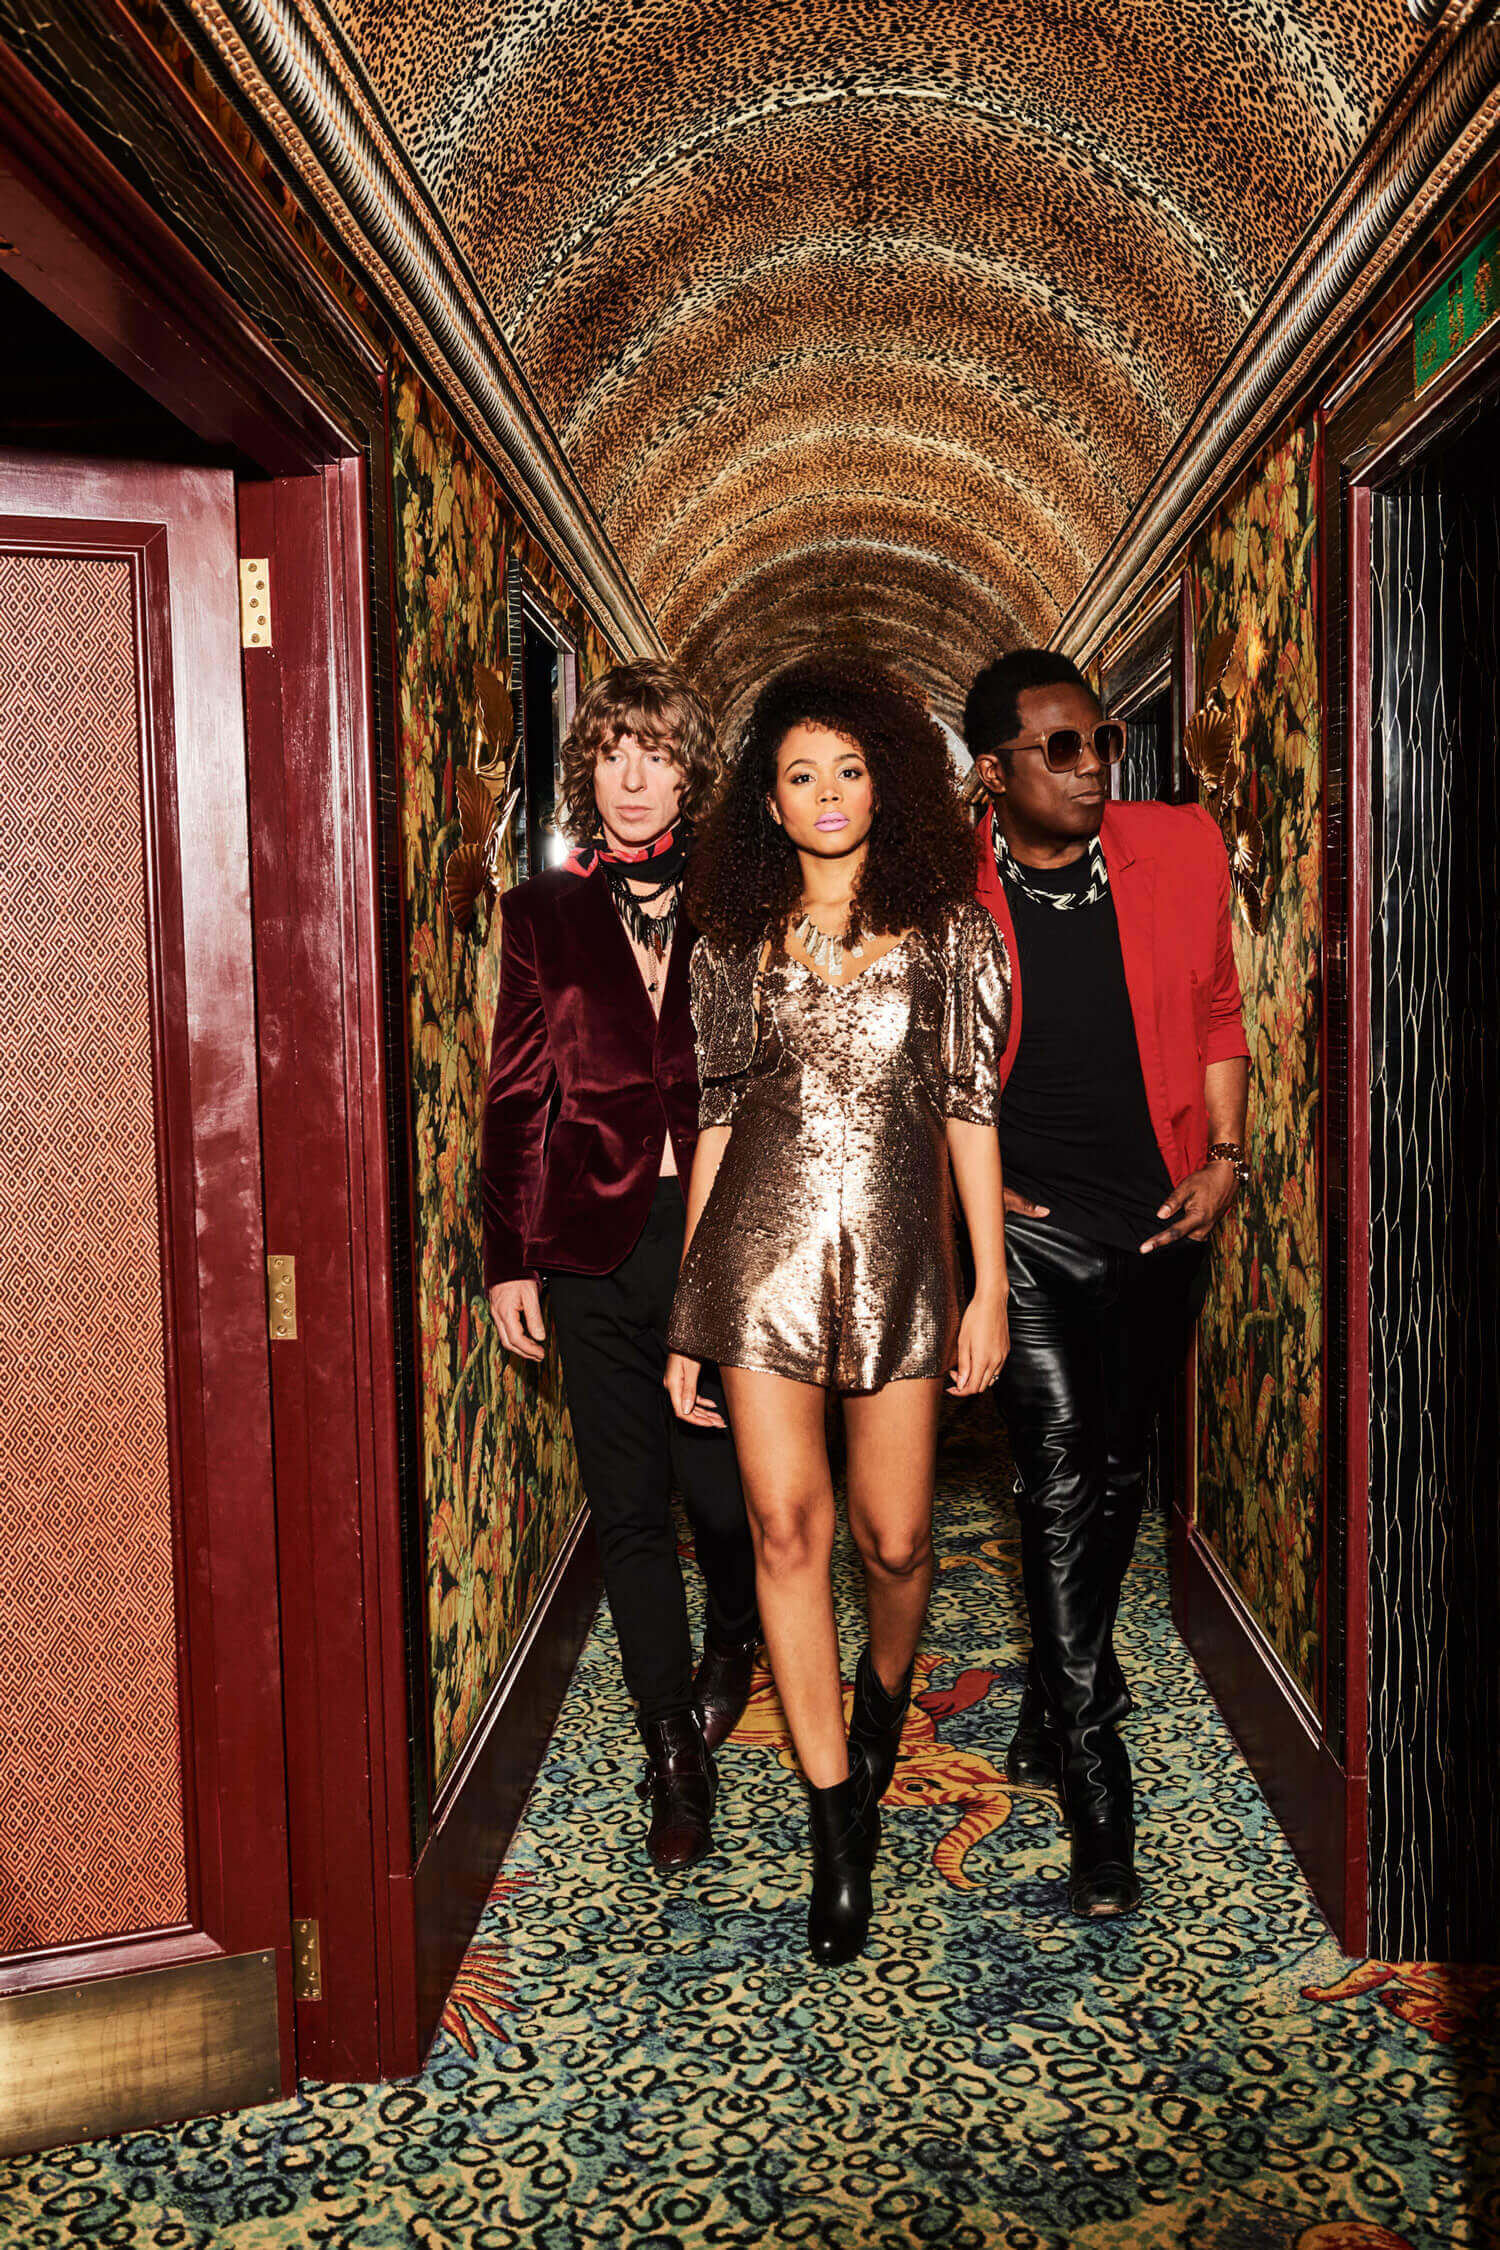 Brand New Heavies band members walking down a hallway for a promotional image for The Classic at Silverstone